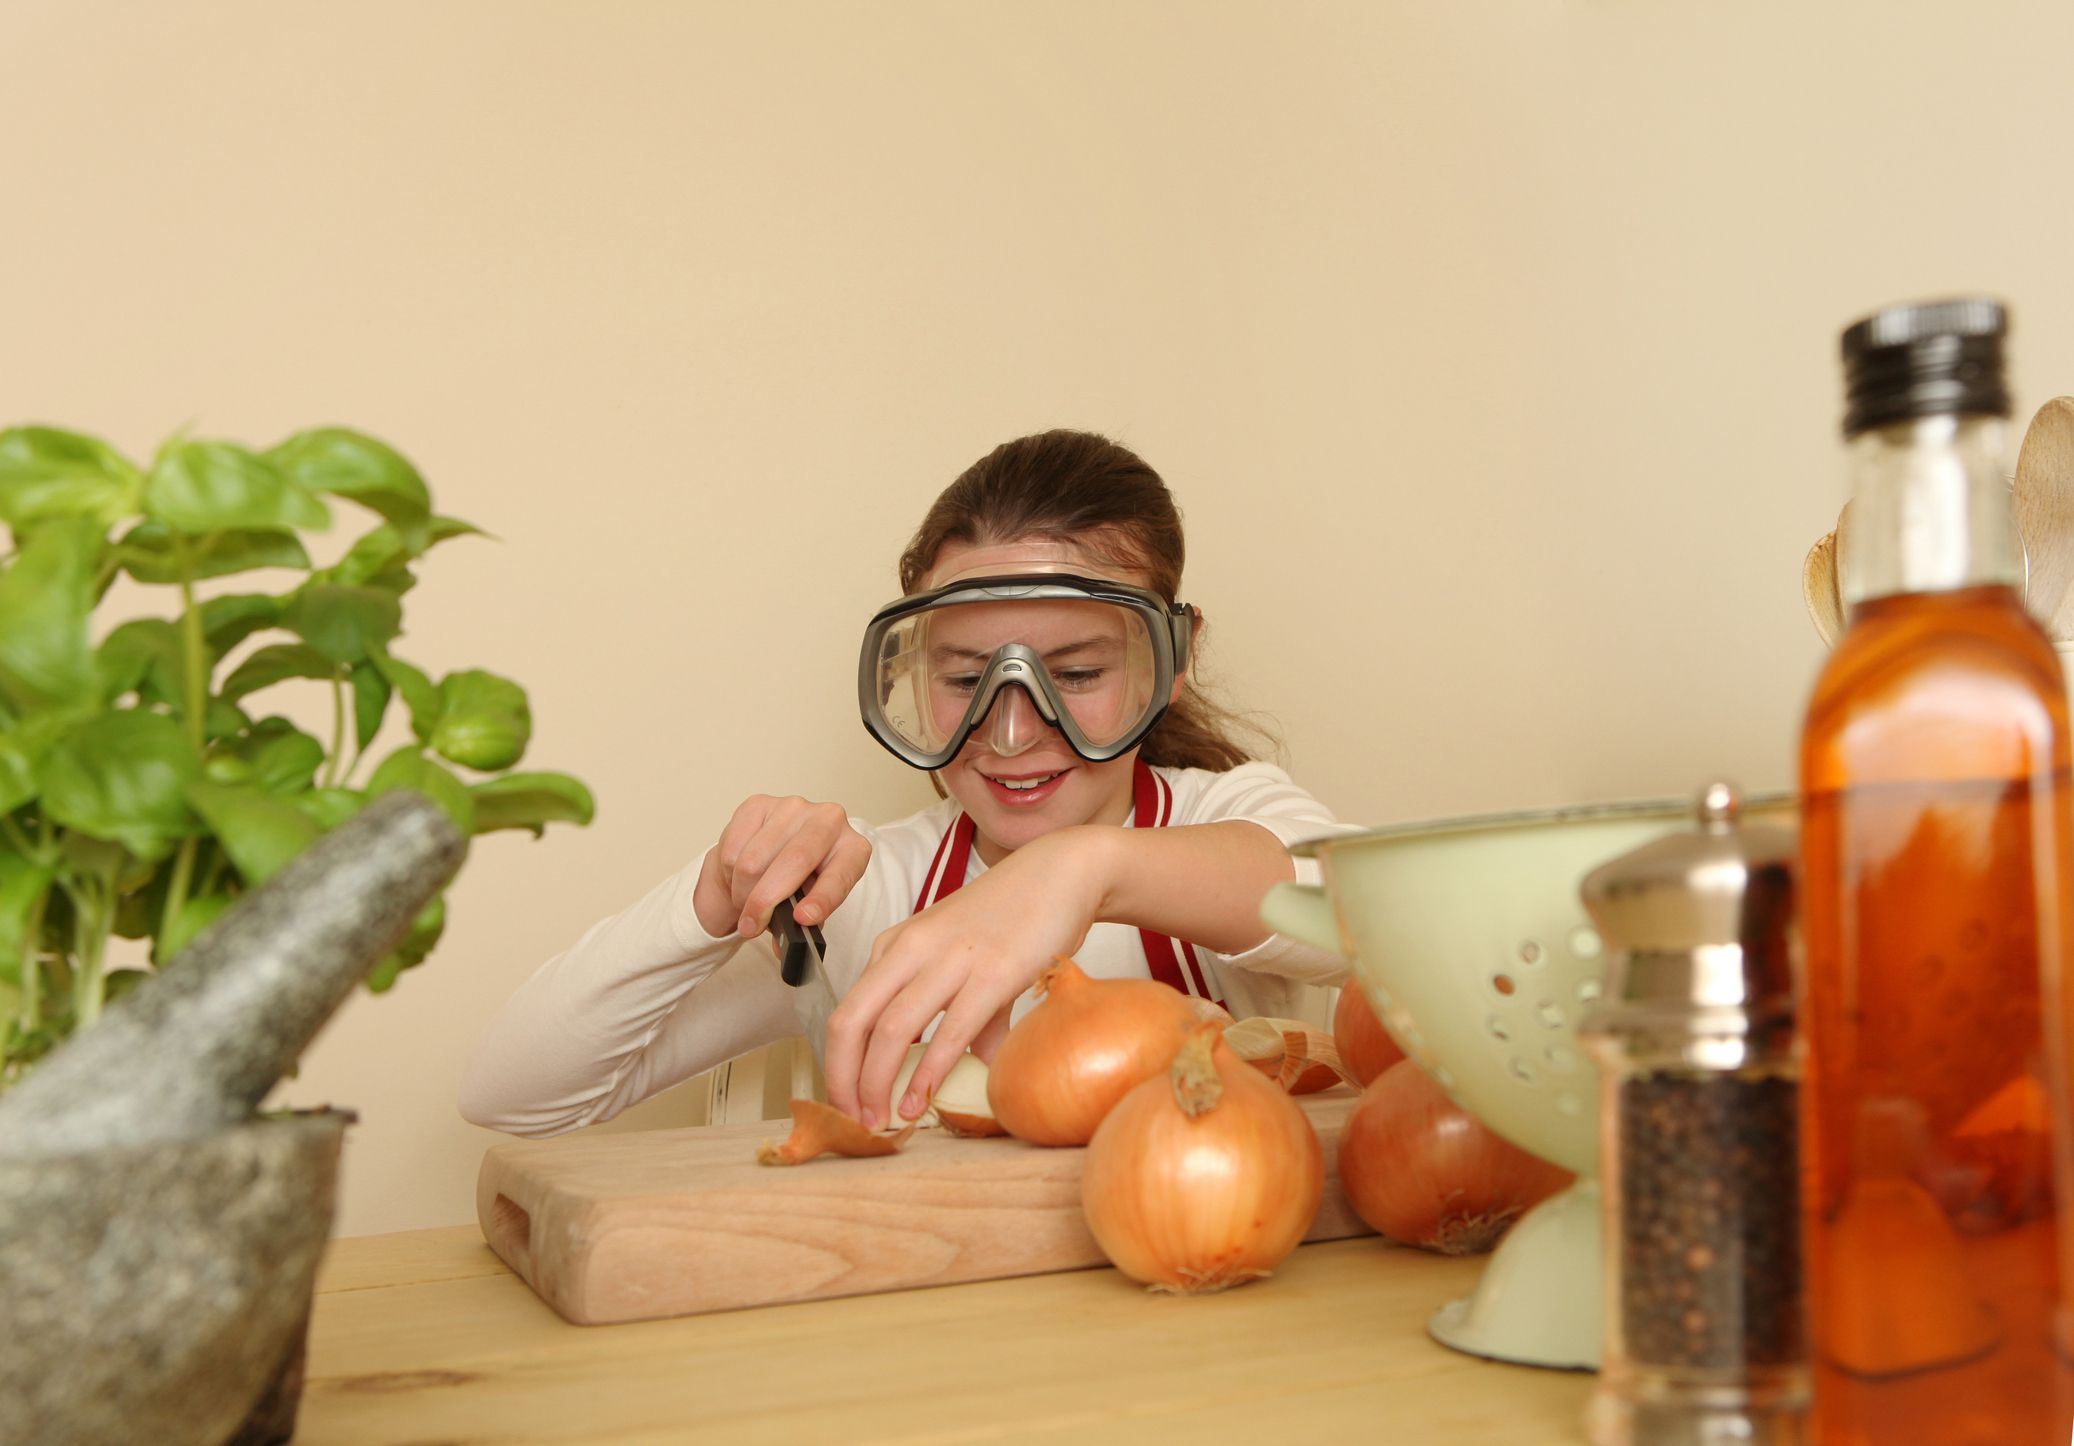 Science Fair Experiment Ideas: The Chemistry of Cooking